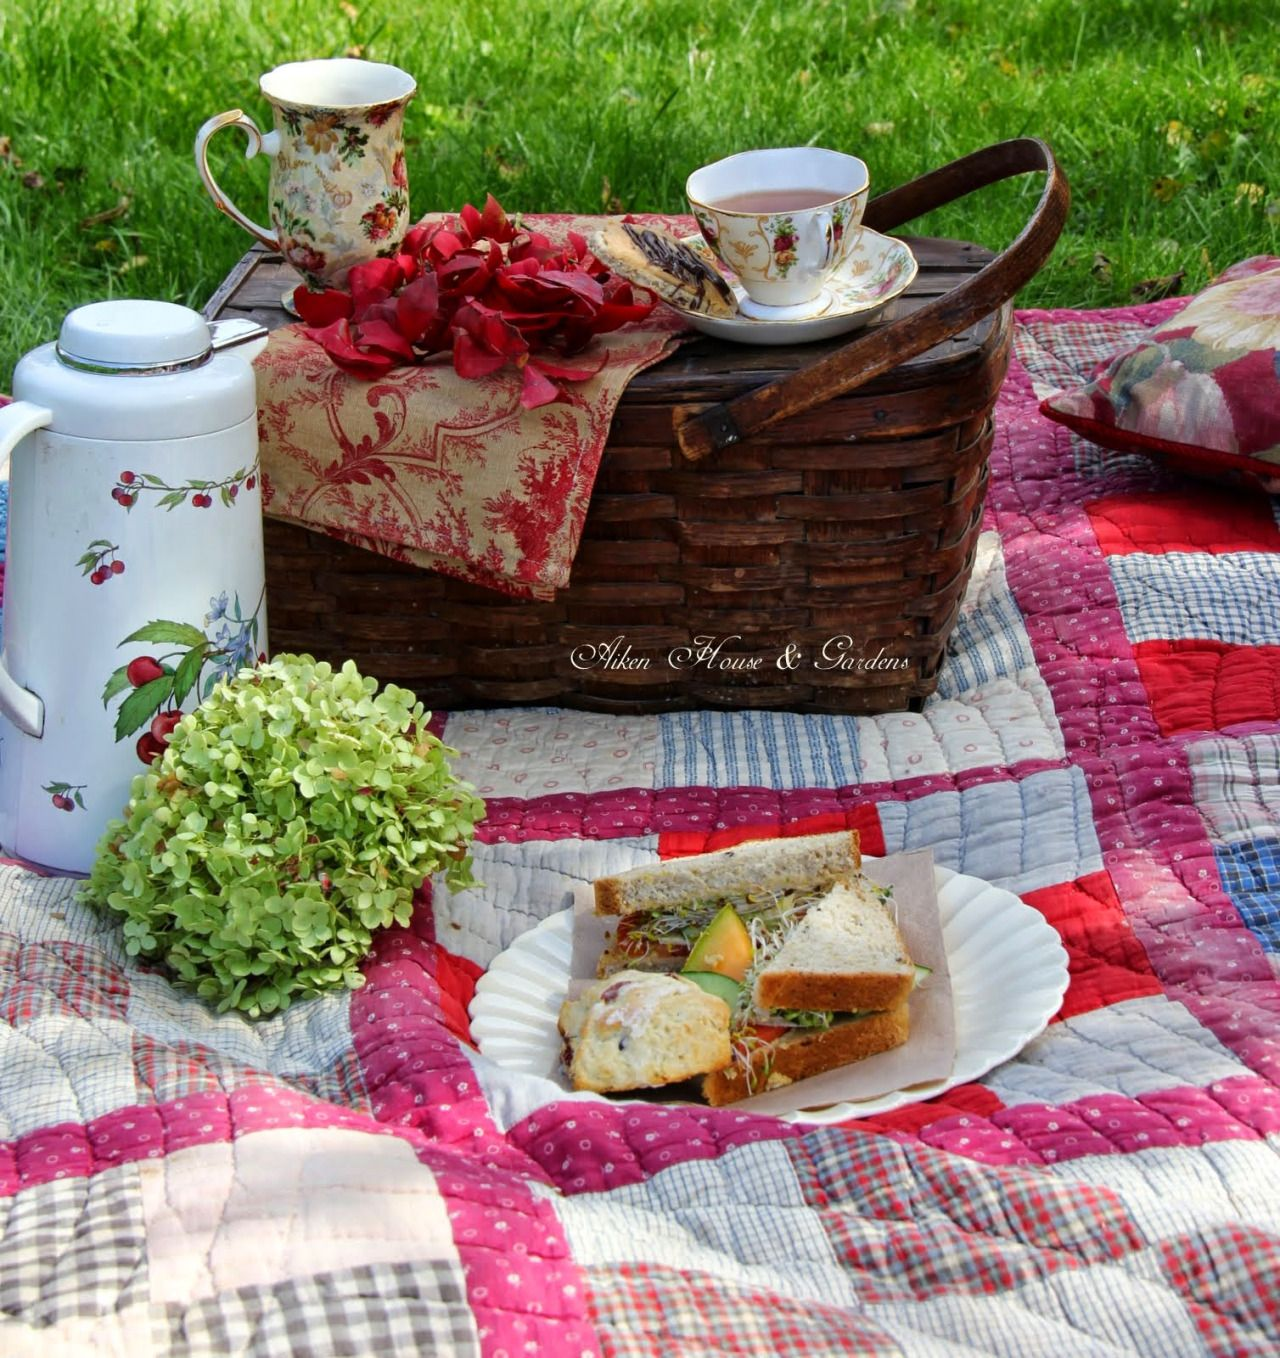 Pin on ** PicNiC TiMe